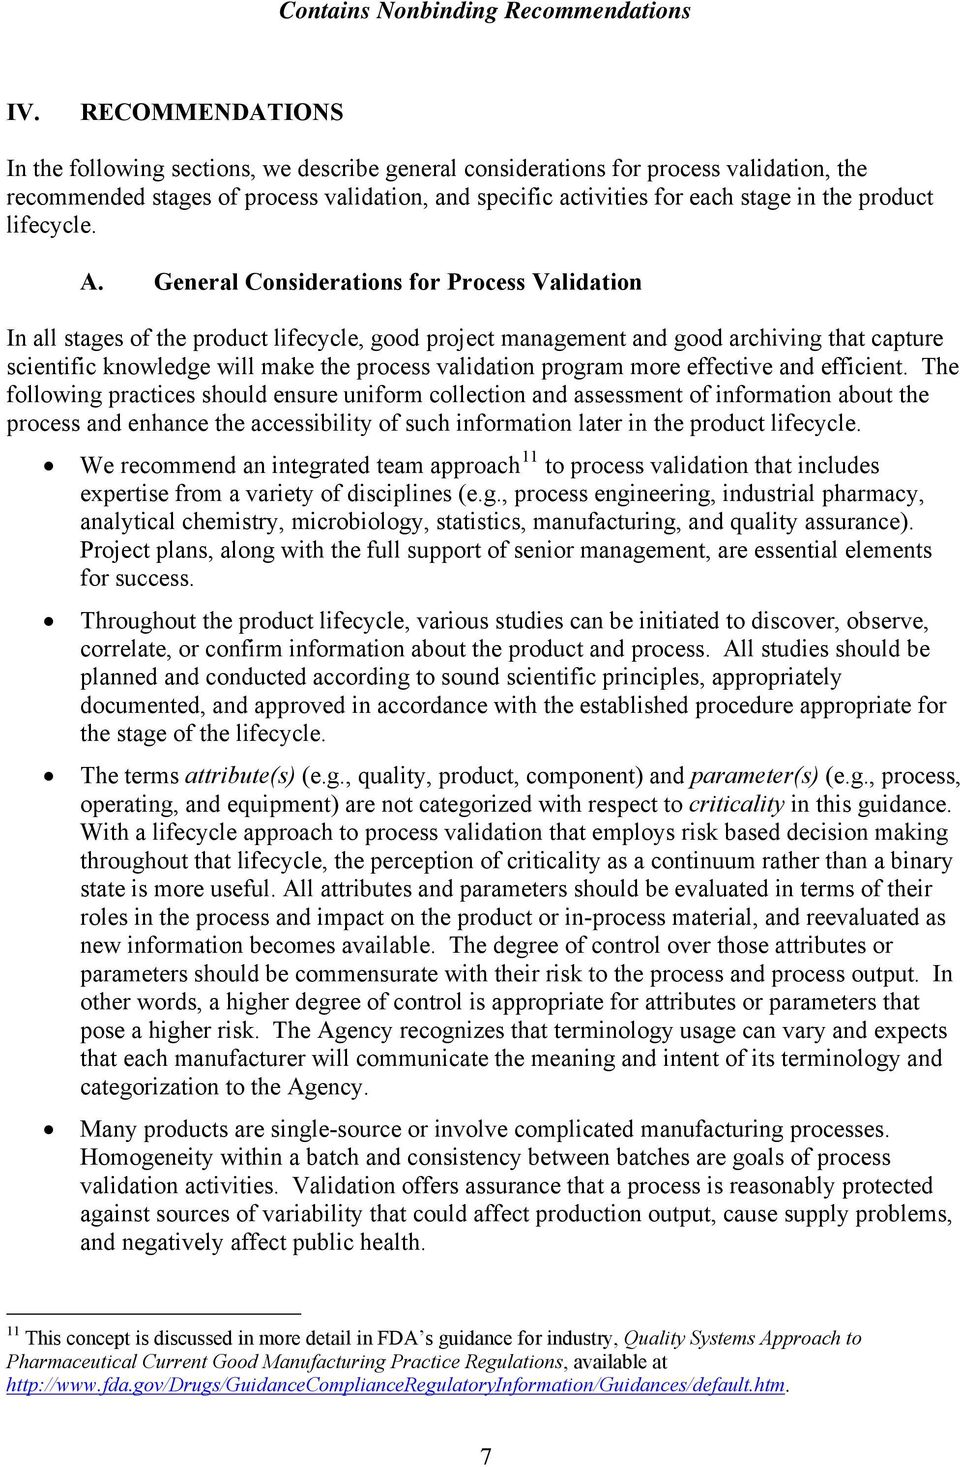 General Considerations for Process Validation In all stages of the product lifecycle, good project management and good archiving that capture scientific knowledge will make the process validation